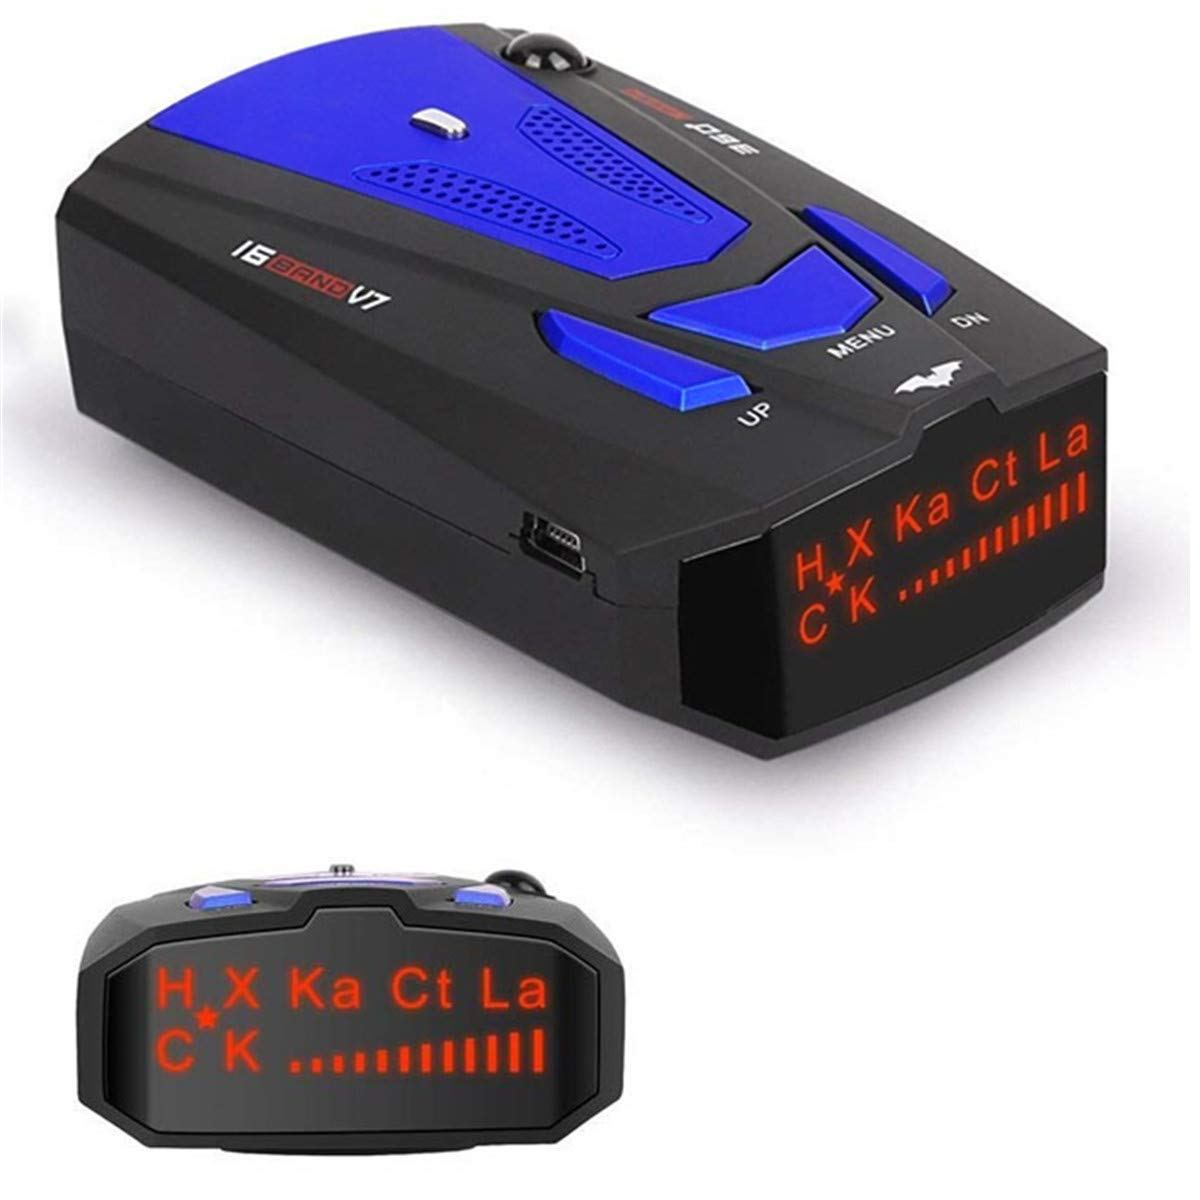 Vicovool Radar Detector, Laser Detector, Voice Alert and Car Speed Alarm System with 360 Degree Detection, City/Highway Mode Radar Detectors for Cars Bright LED Display by Vicovool